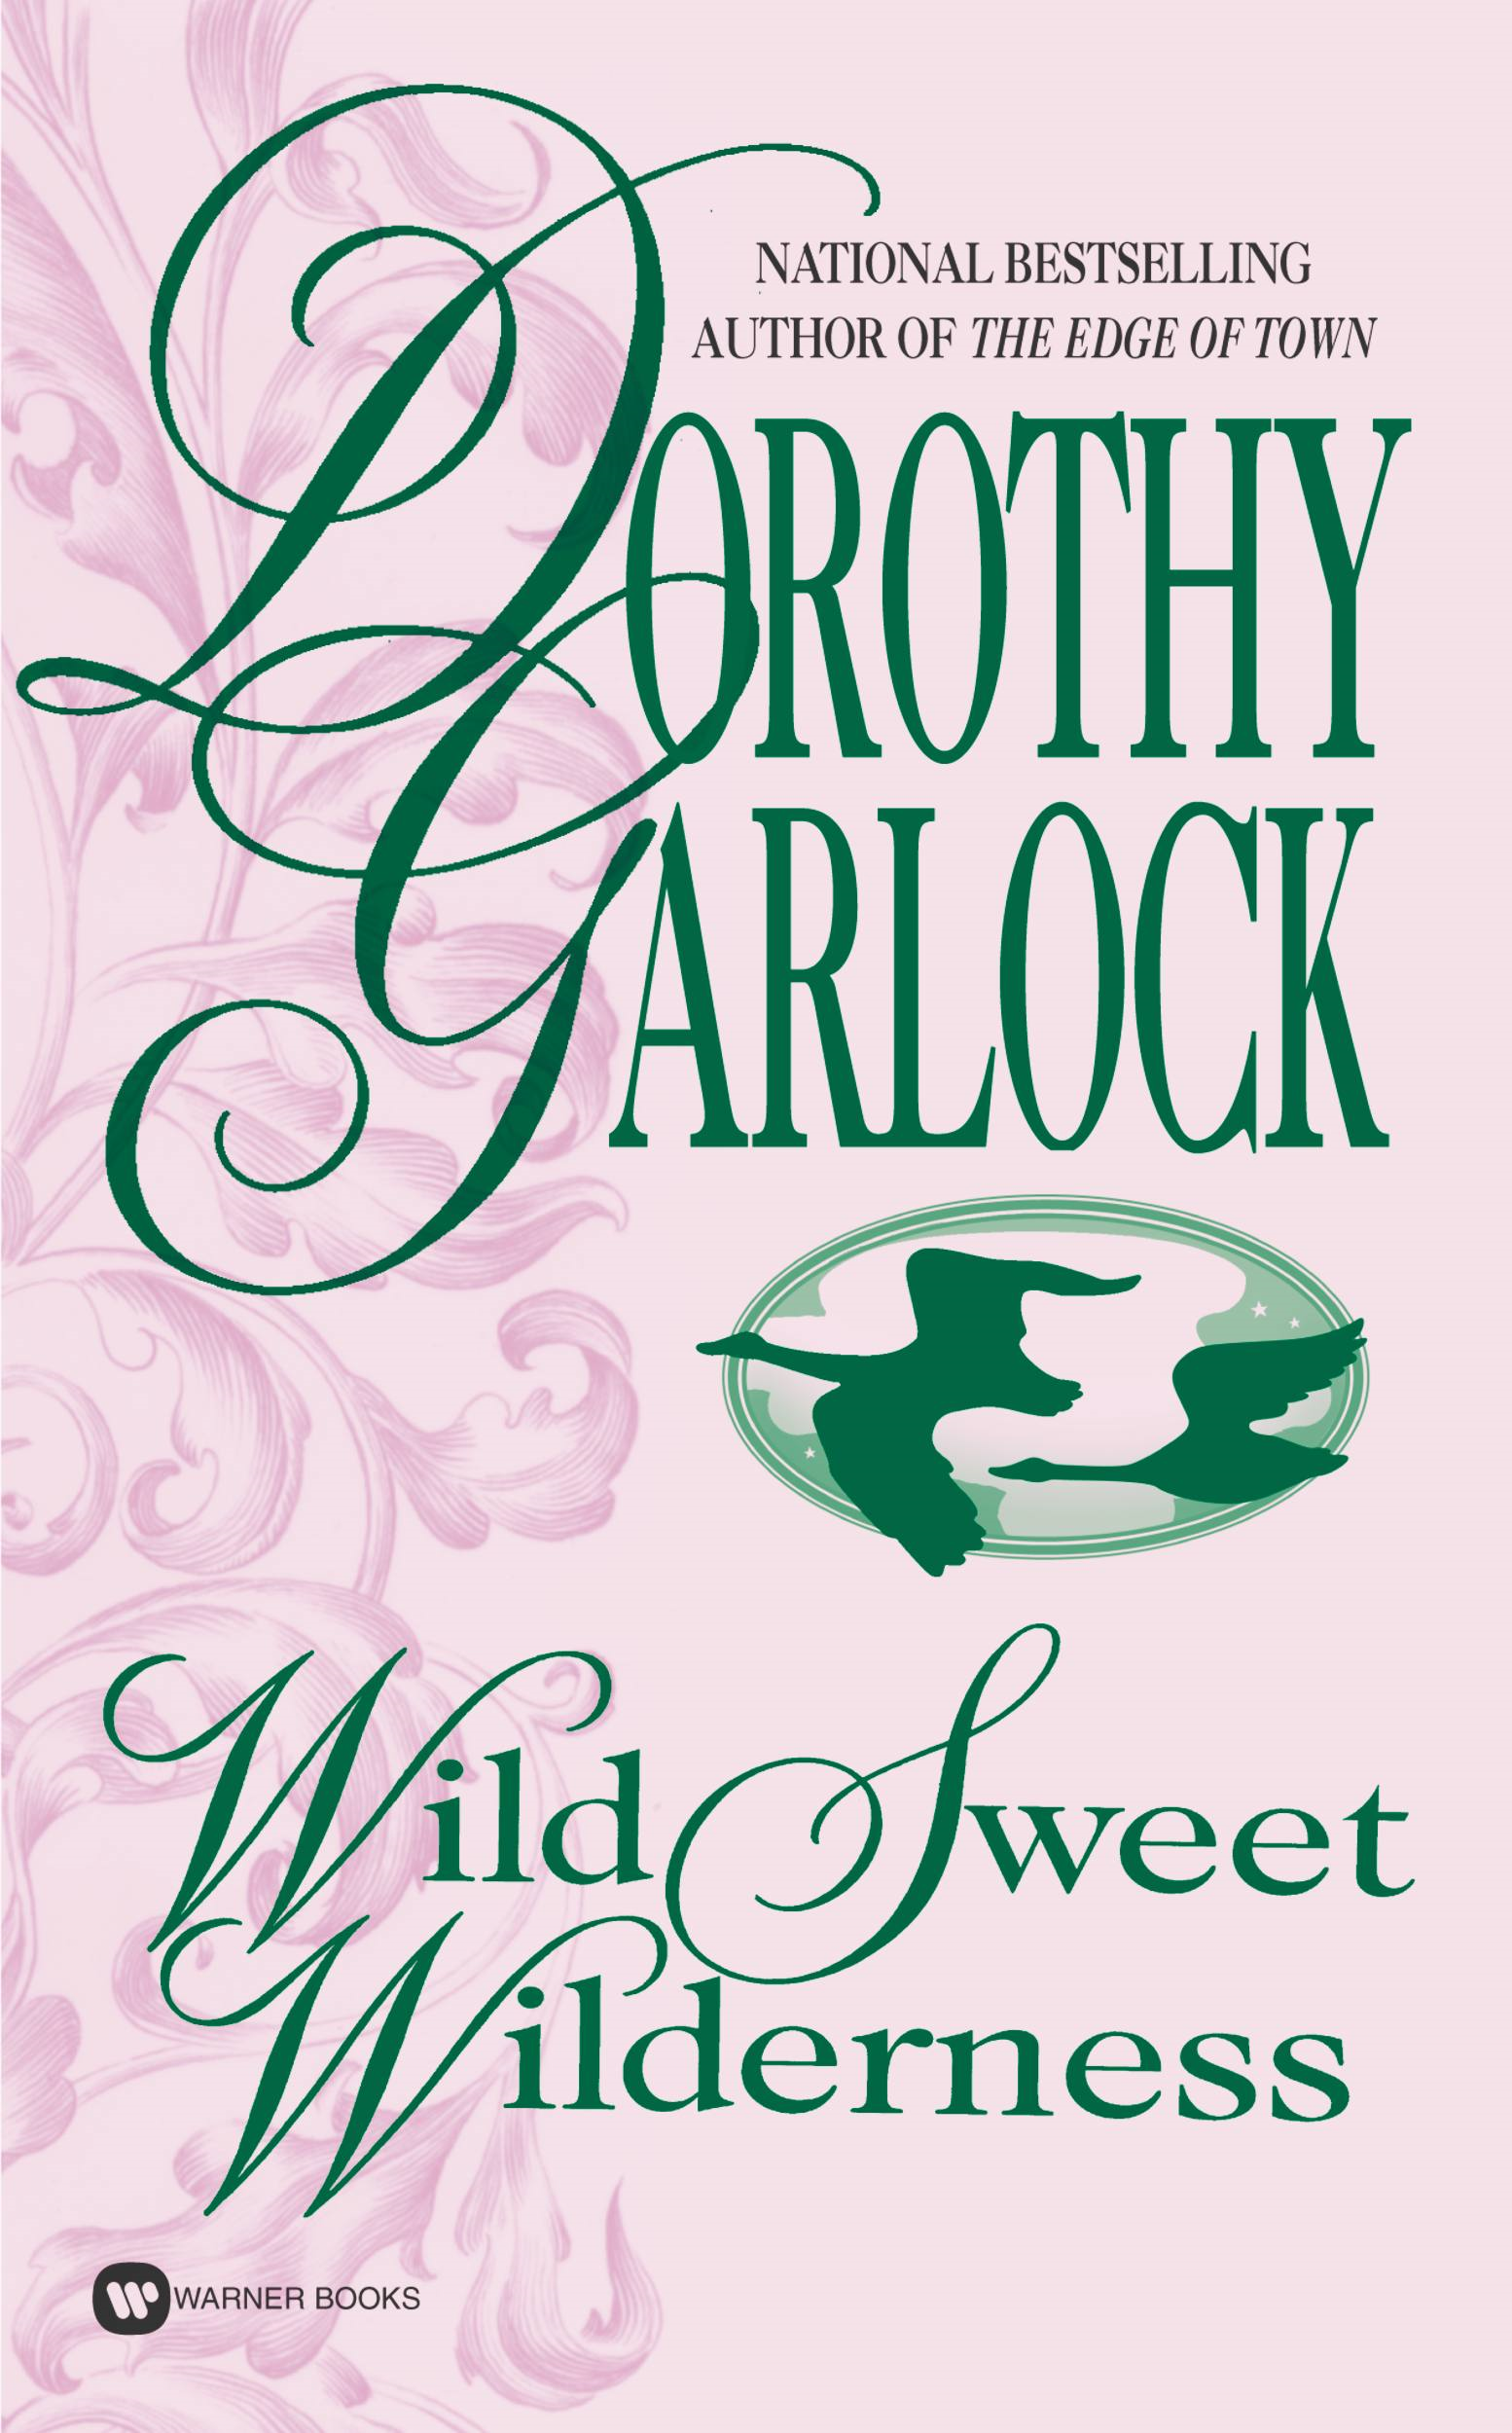 Wild Sweet Wilderness By: Dorothy Garlock